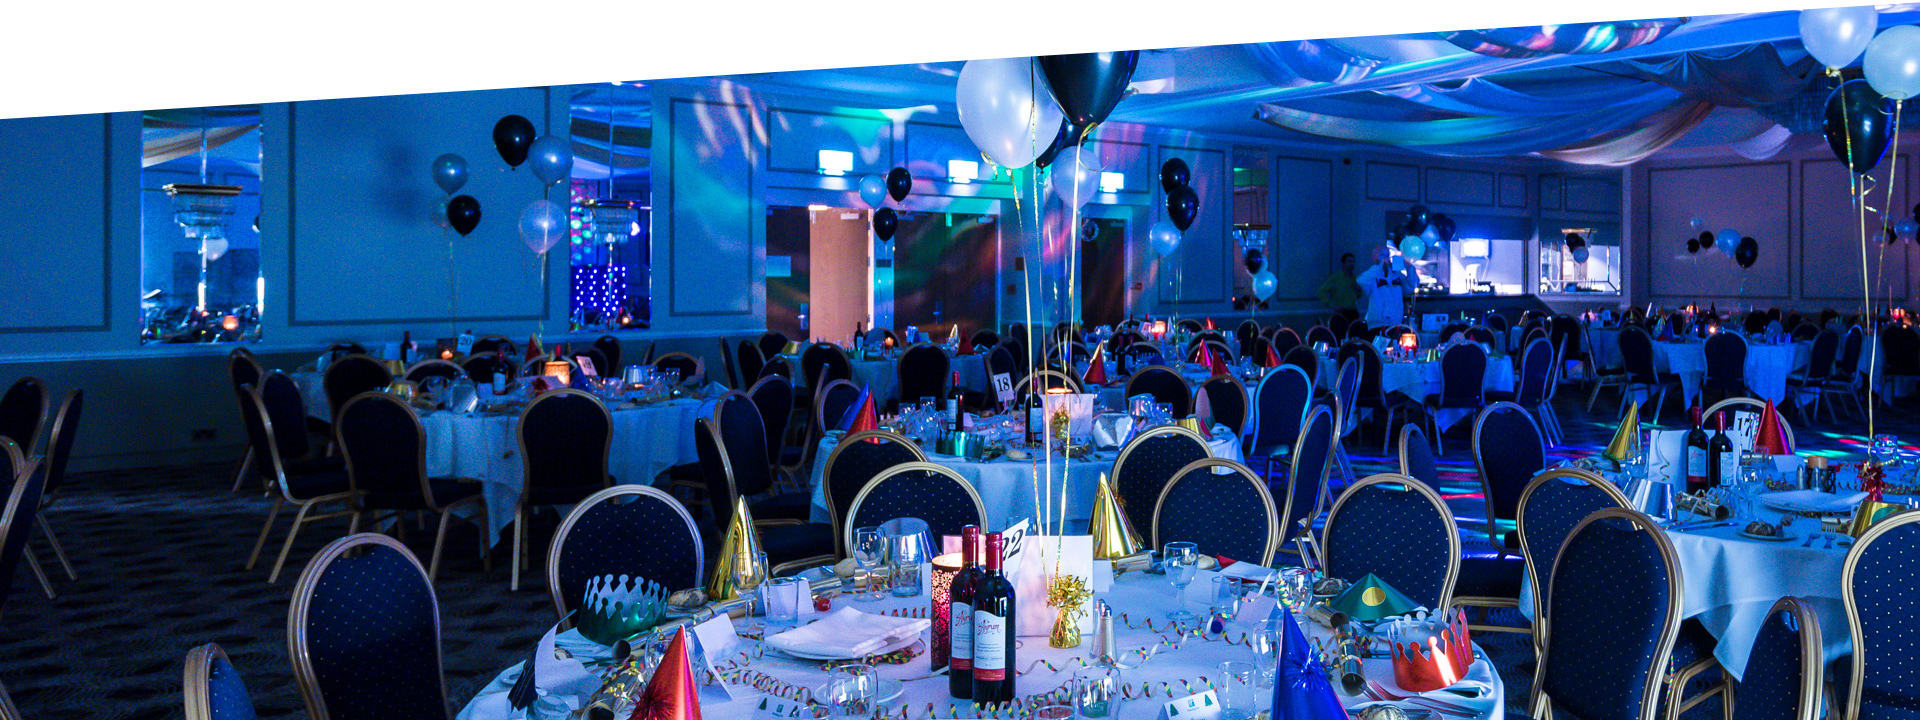 Holiday Inn Brighton Seafront Christmas Party